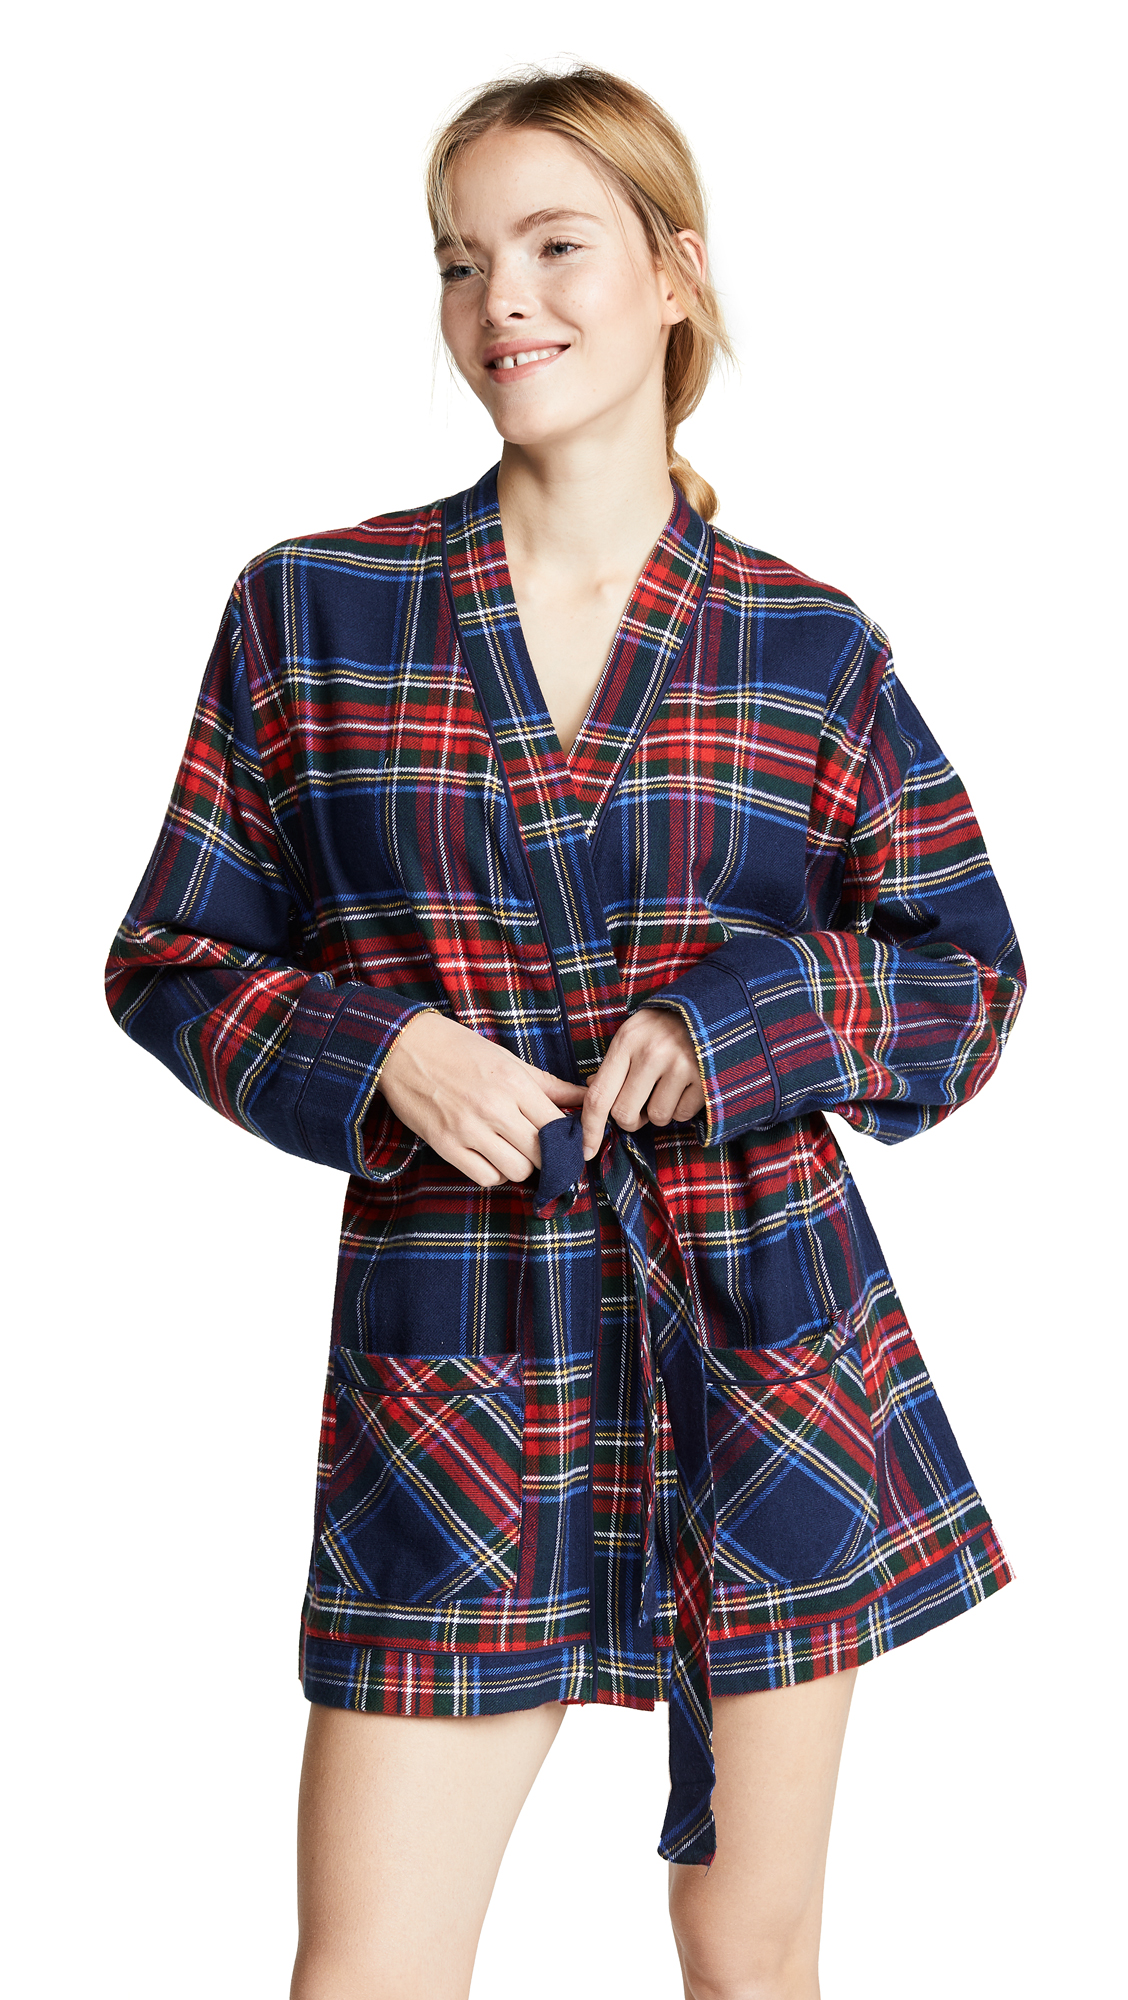 PLUSH Ultra Soft Flannel Robe in Navy/Red Plaid